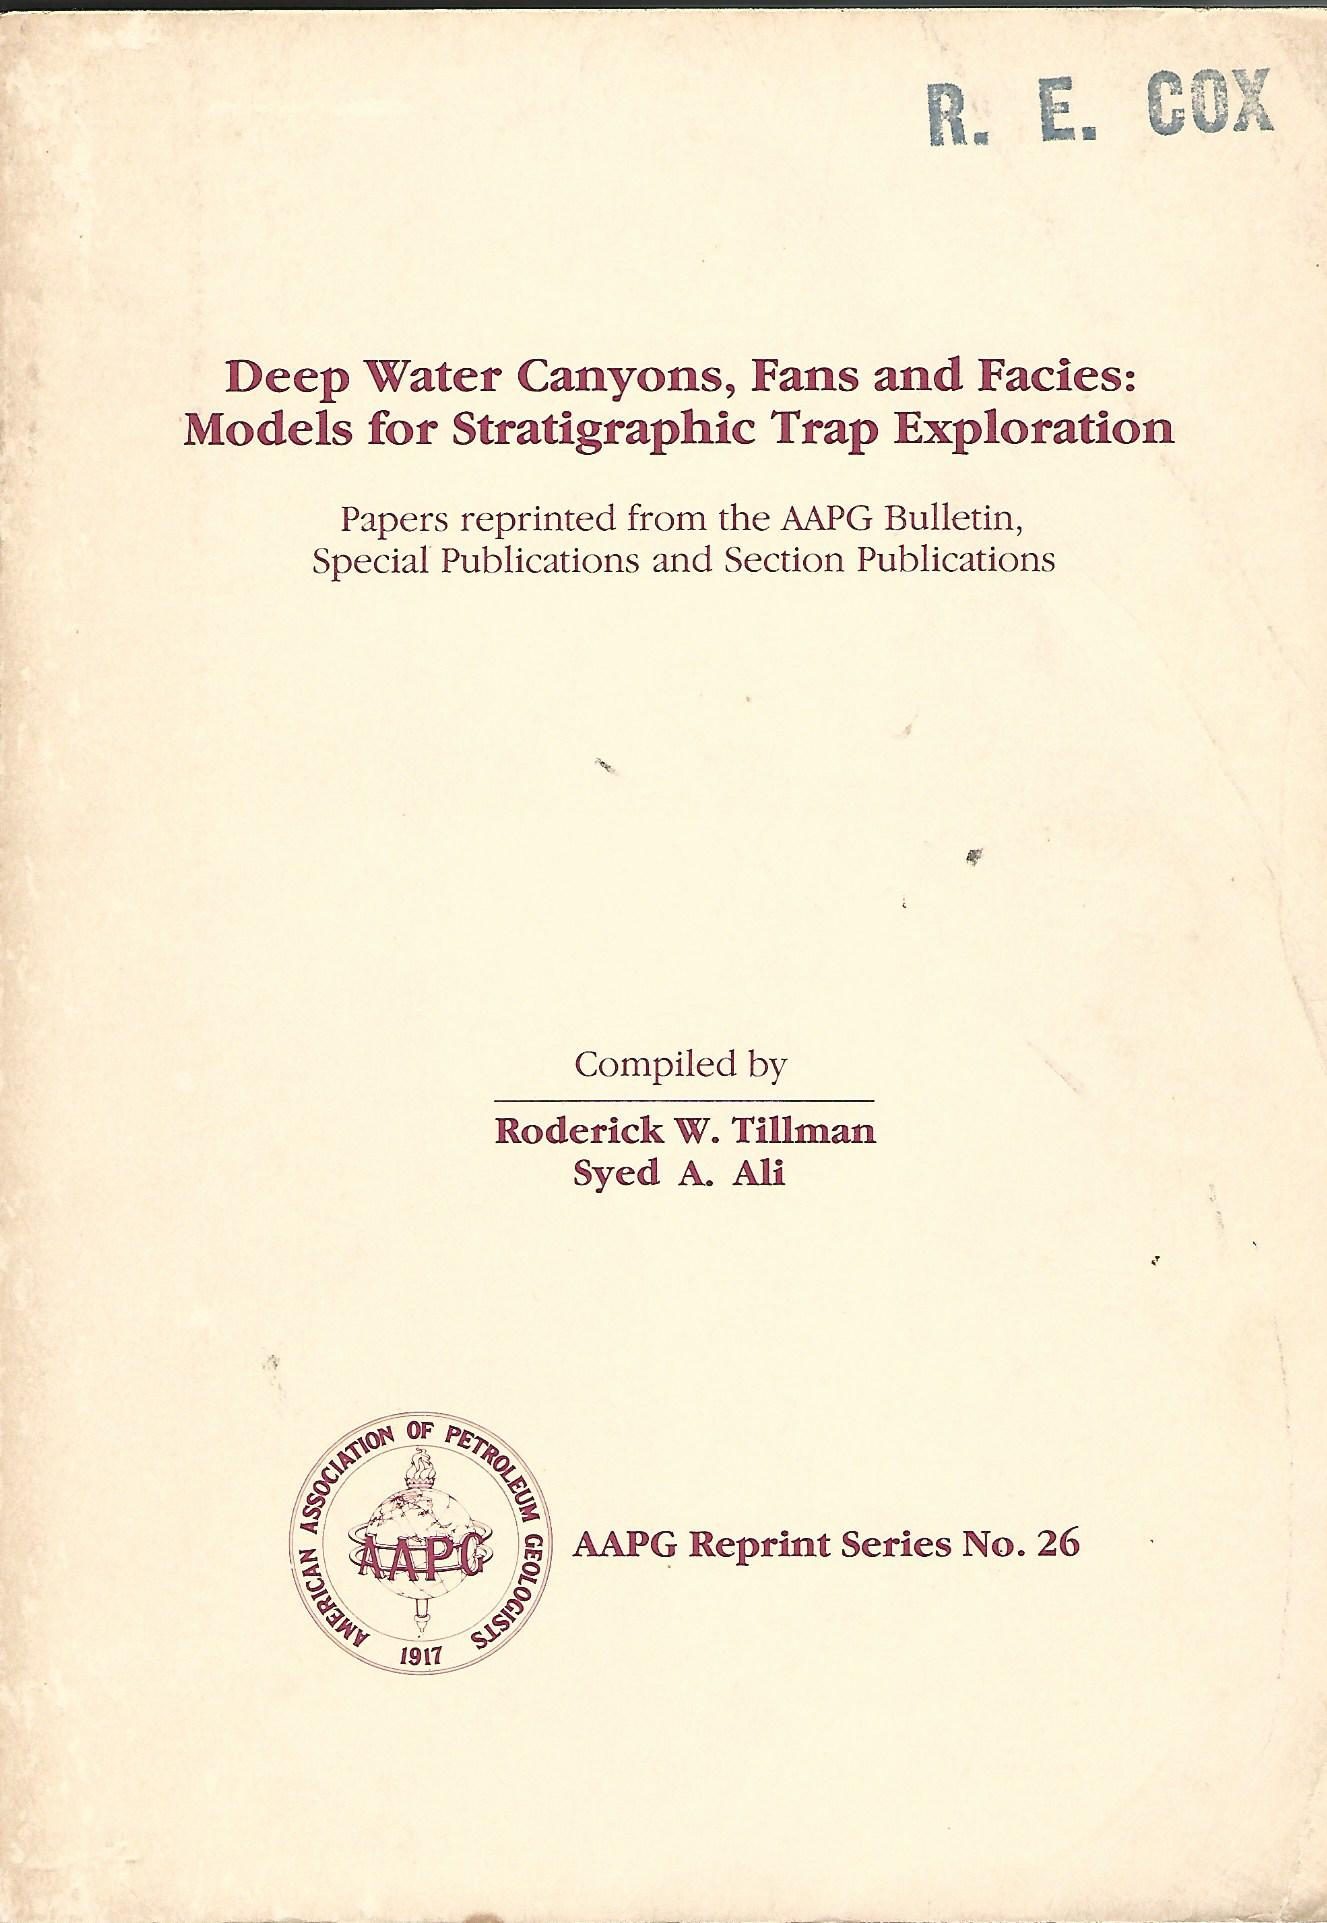 Image for Deep Water Canyons, Fans and facies: Models for Stratigraphic Trap Exploration. Papers reprinted from the AAPG Bulletin, Special Publications and Secret Publications.